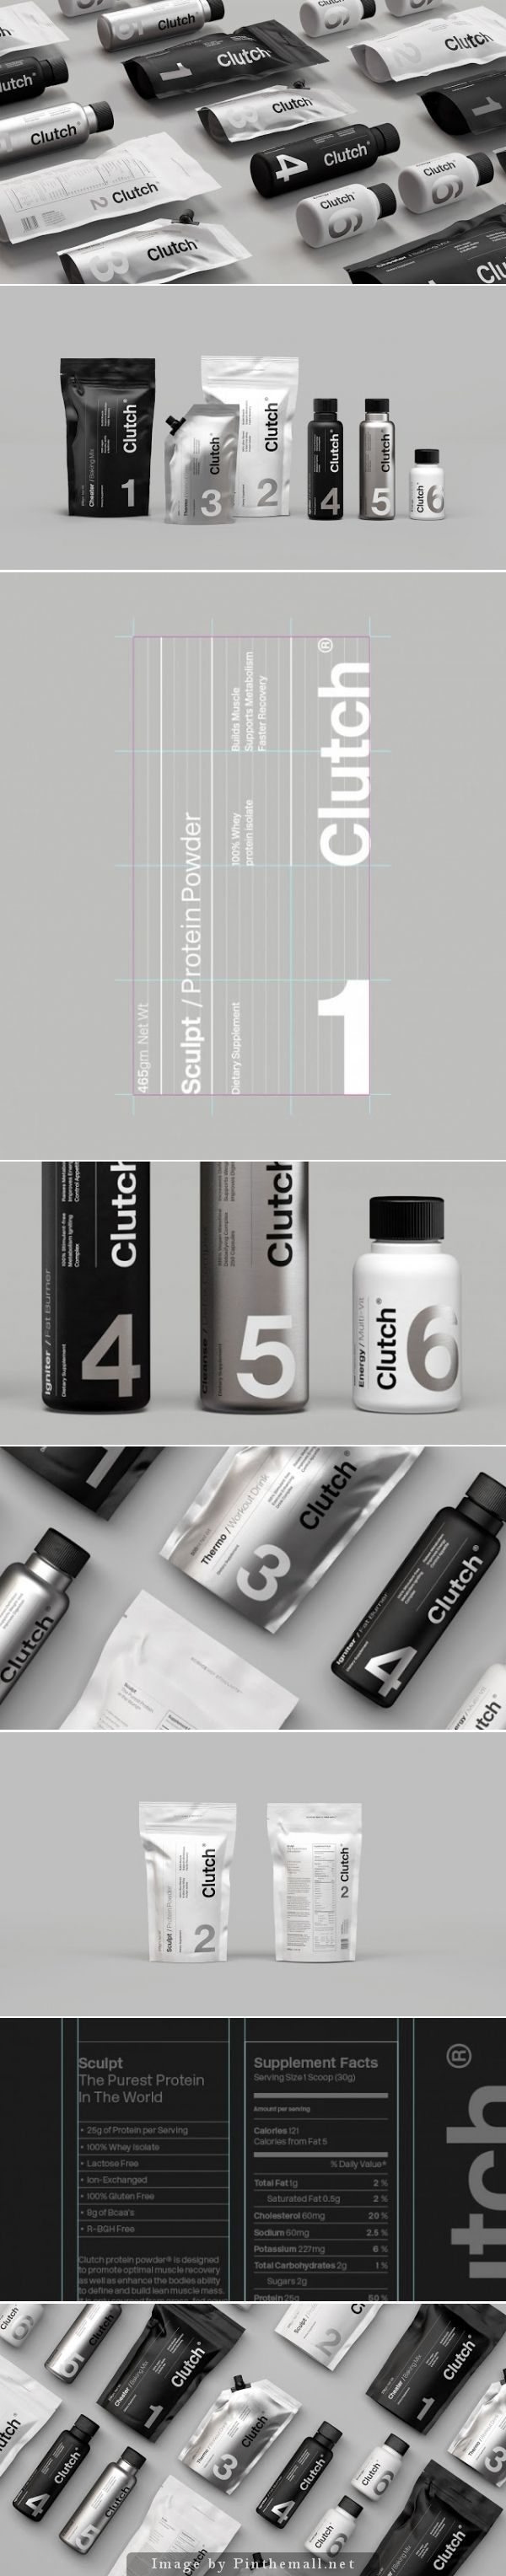 Clutch Bodyshop, Creative Agency: Socio Design